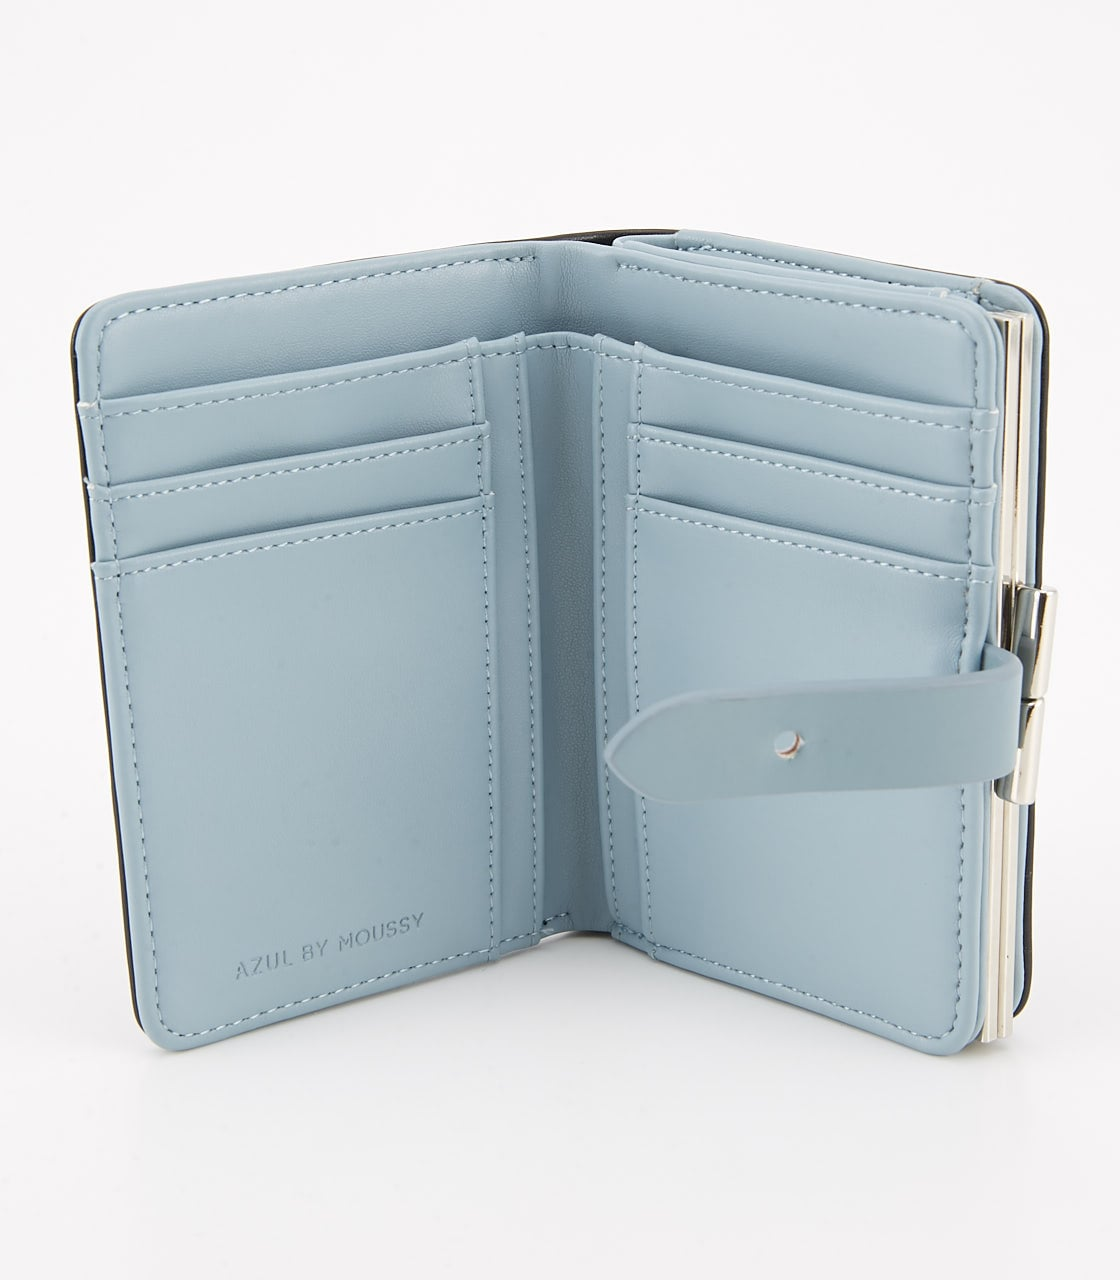 【AZUL BY MOUSSY】COLOR POINT WALLET 詳細画像 BLK 3